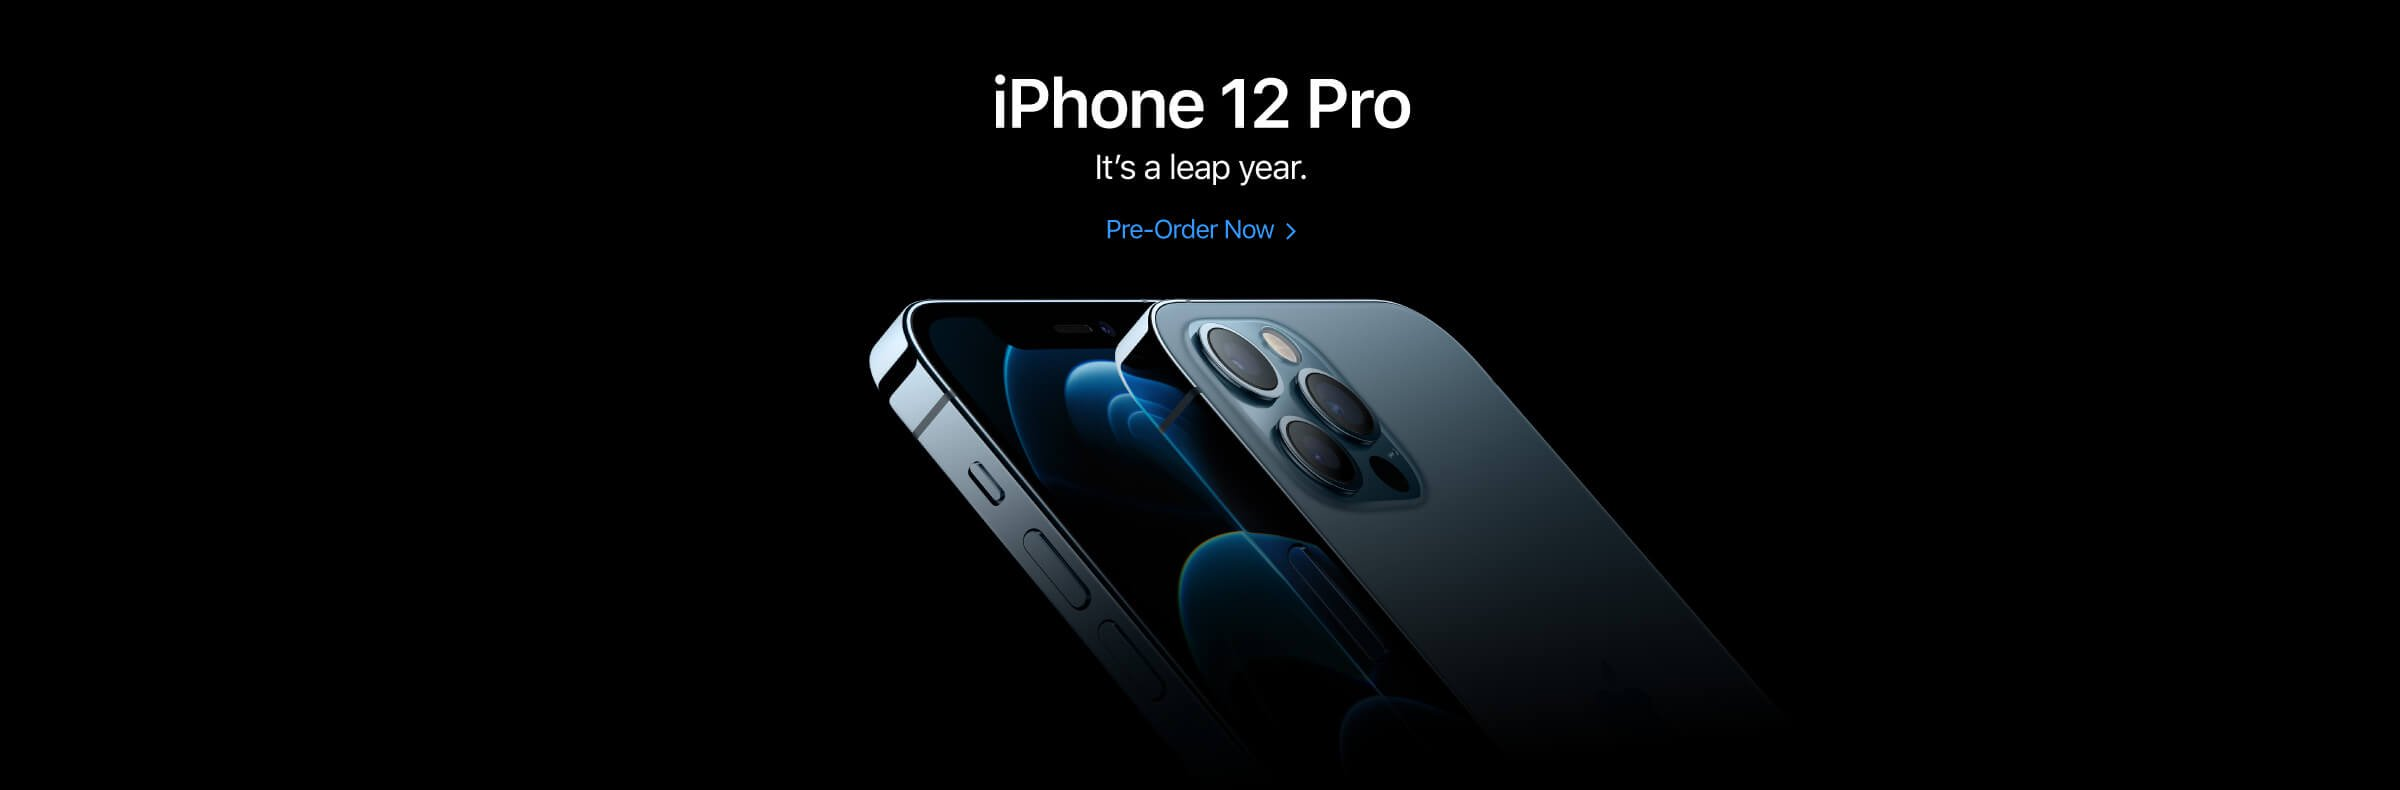 Apple iPhone 12 Pro - Available for Pre-Order Now